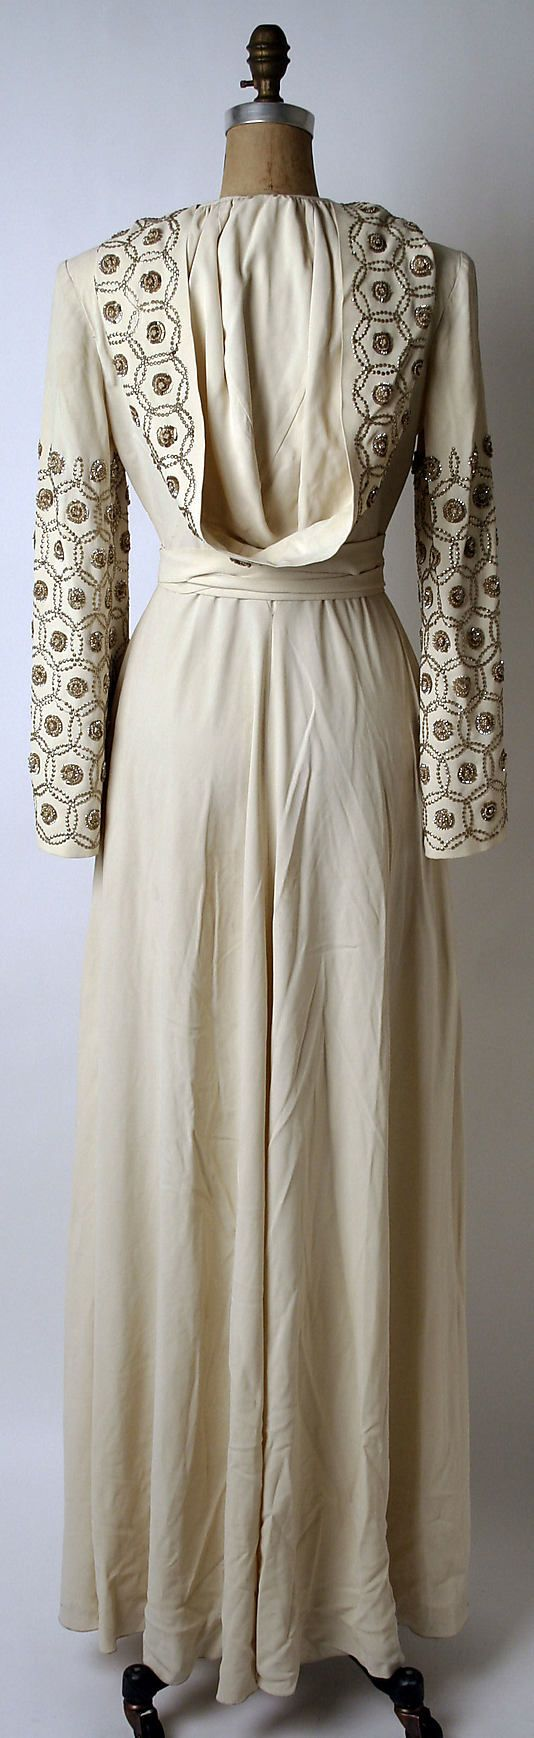 Wedding dress, Norman Norell (1942). Embroidered sleeves and hood